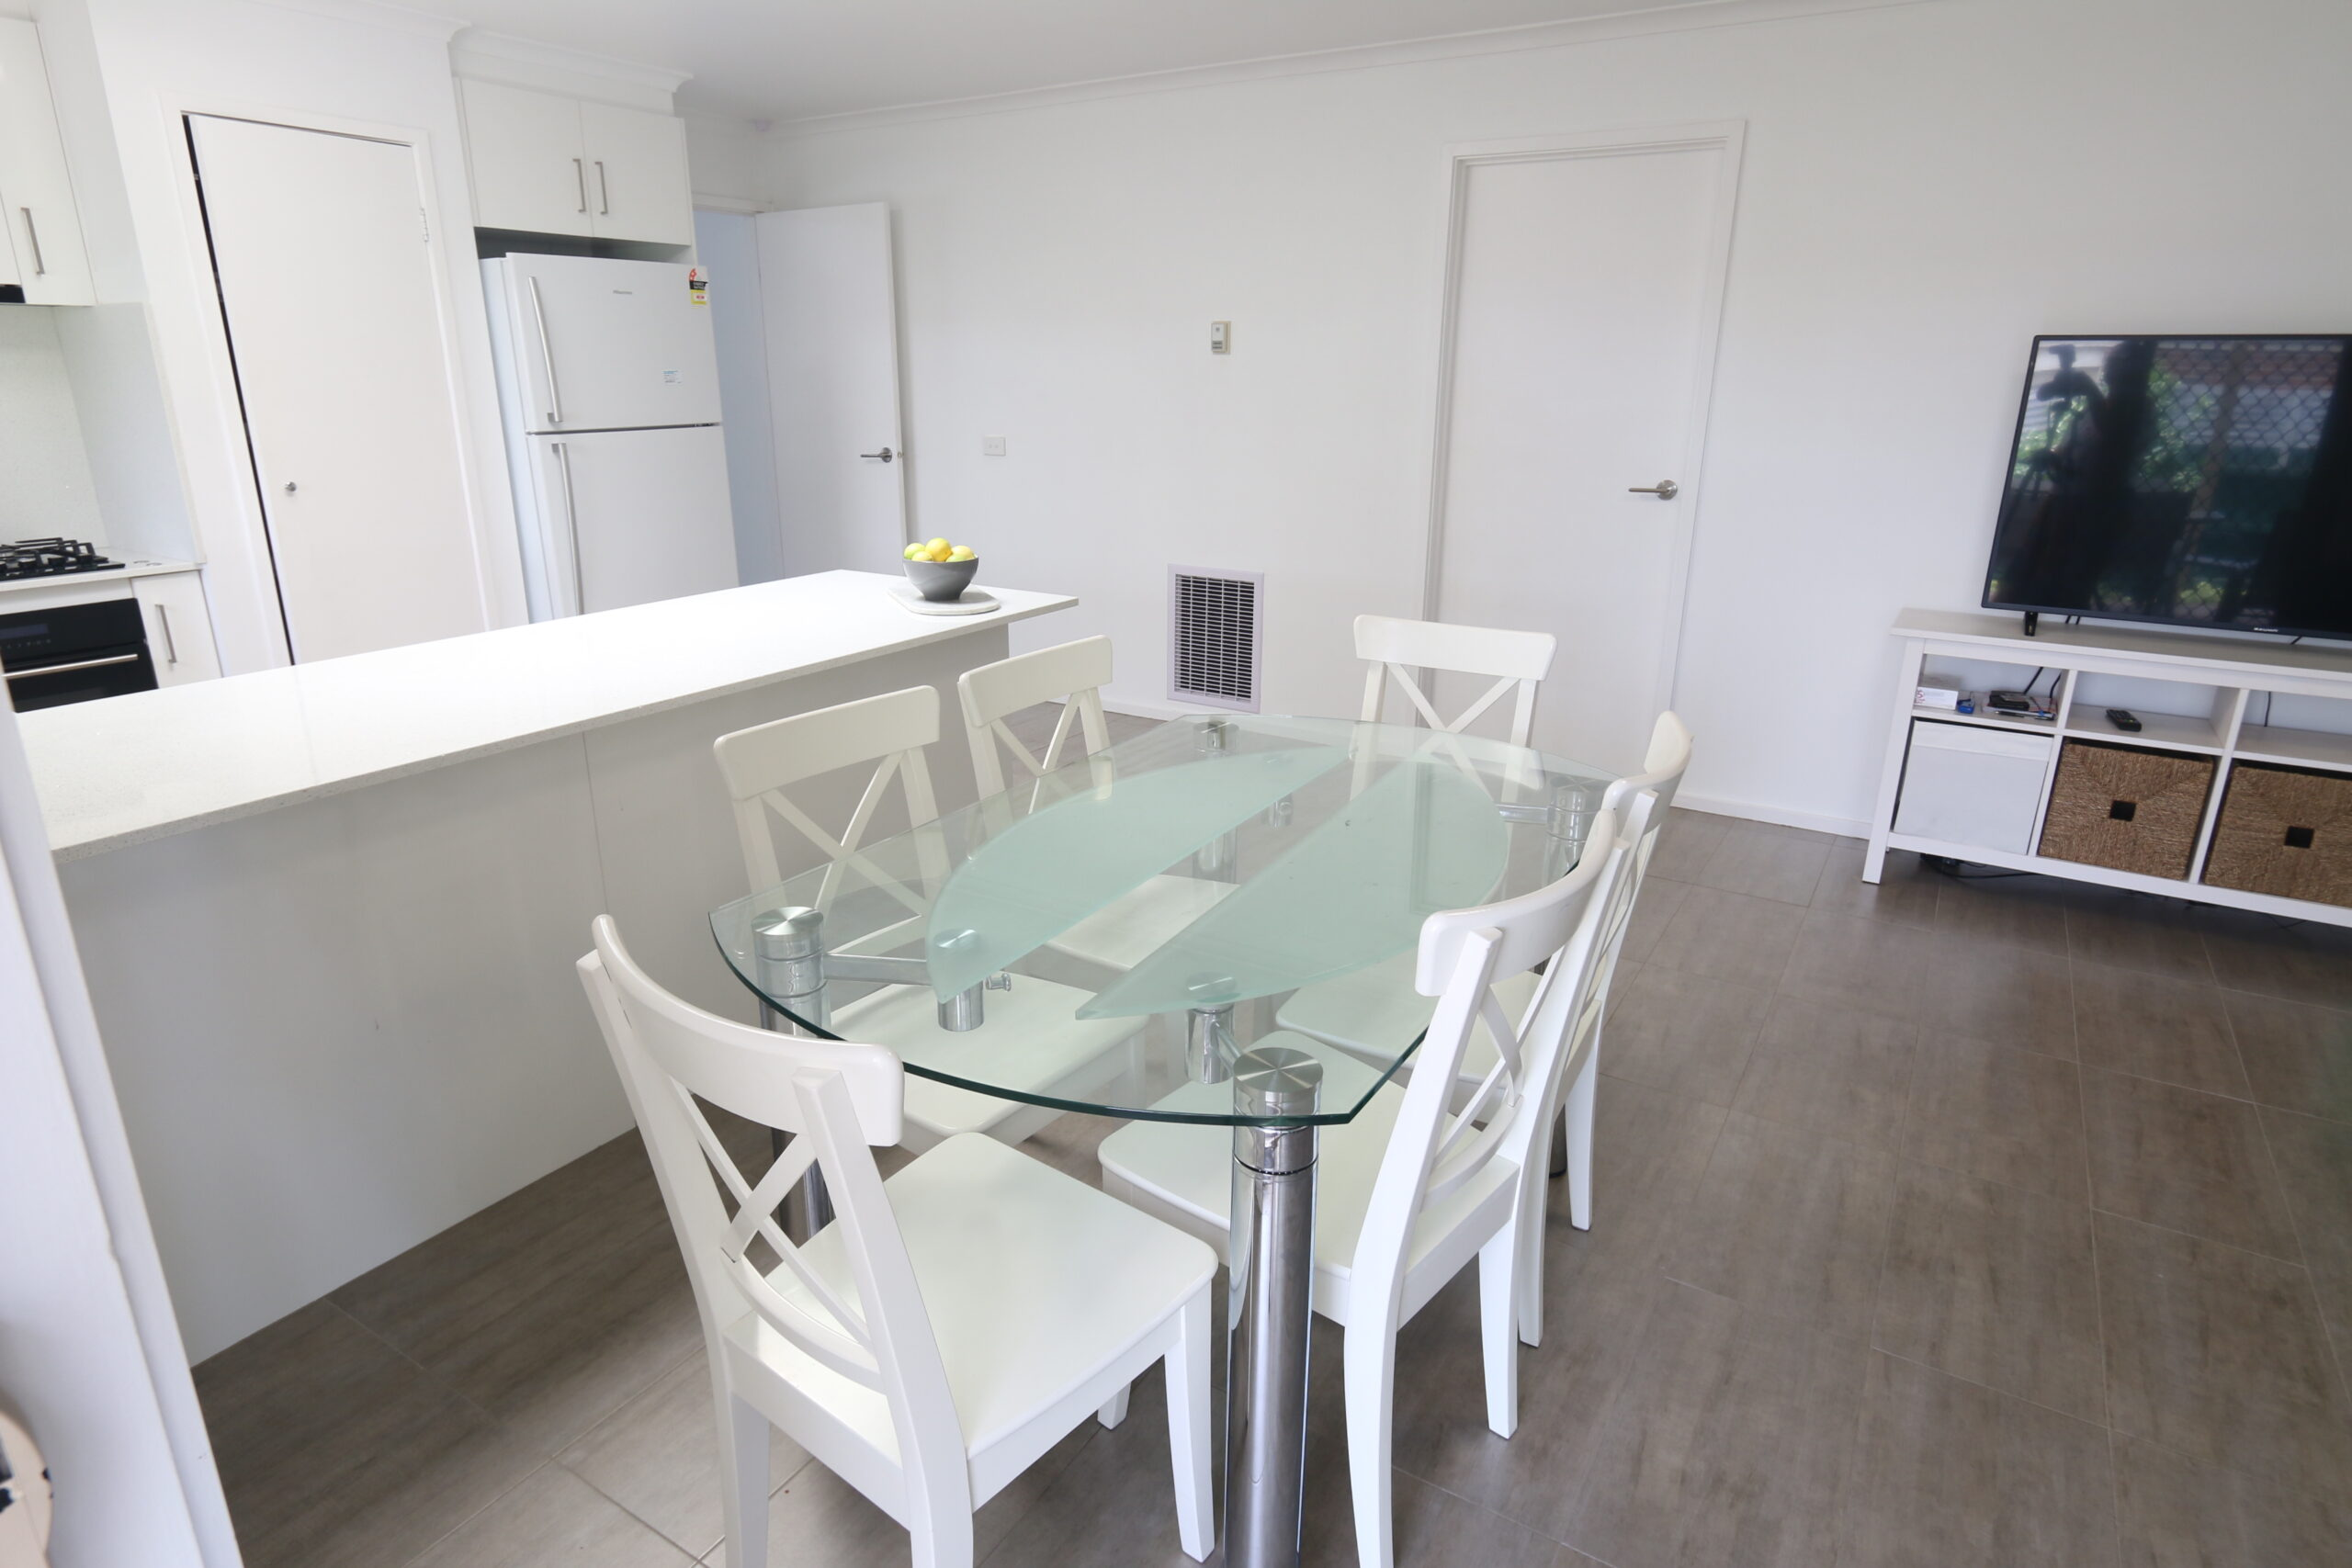 kitchen and meals area. Safety Beach holiday rental.